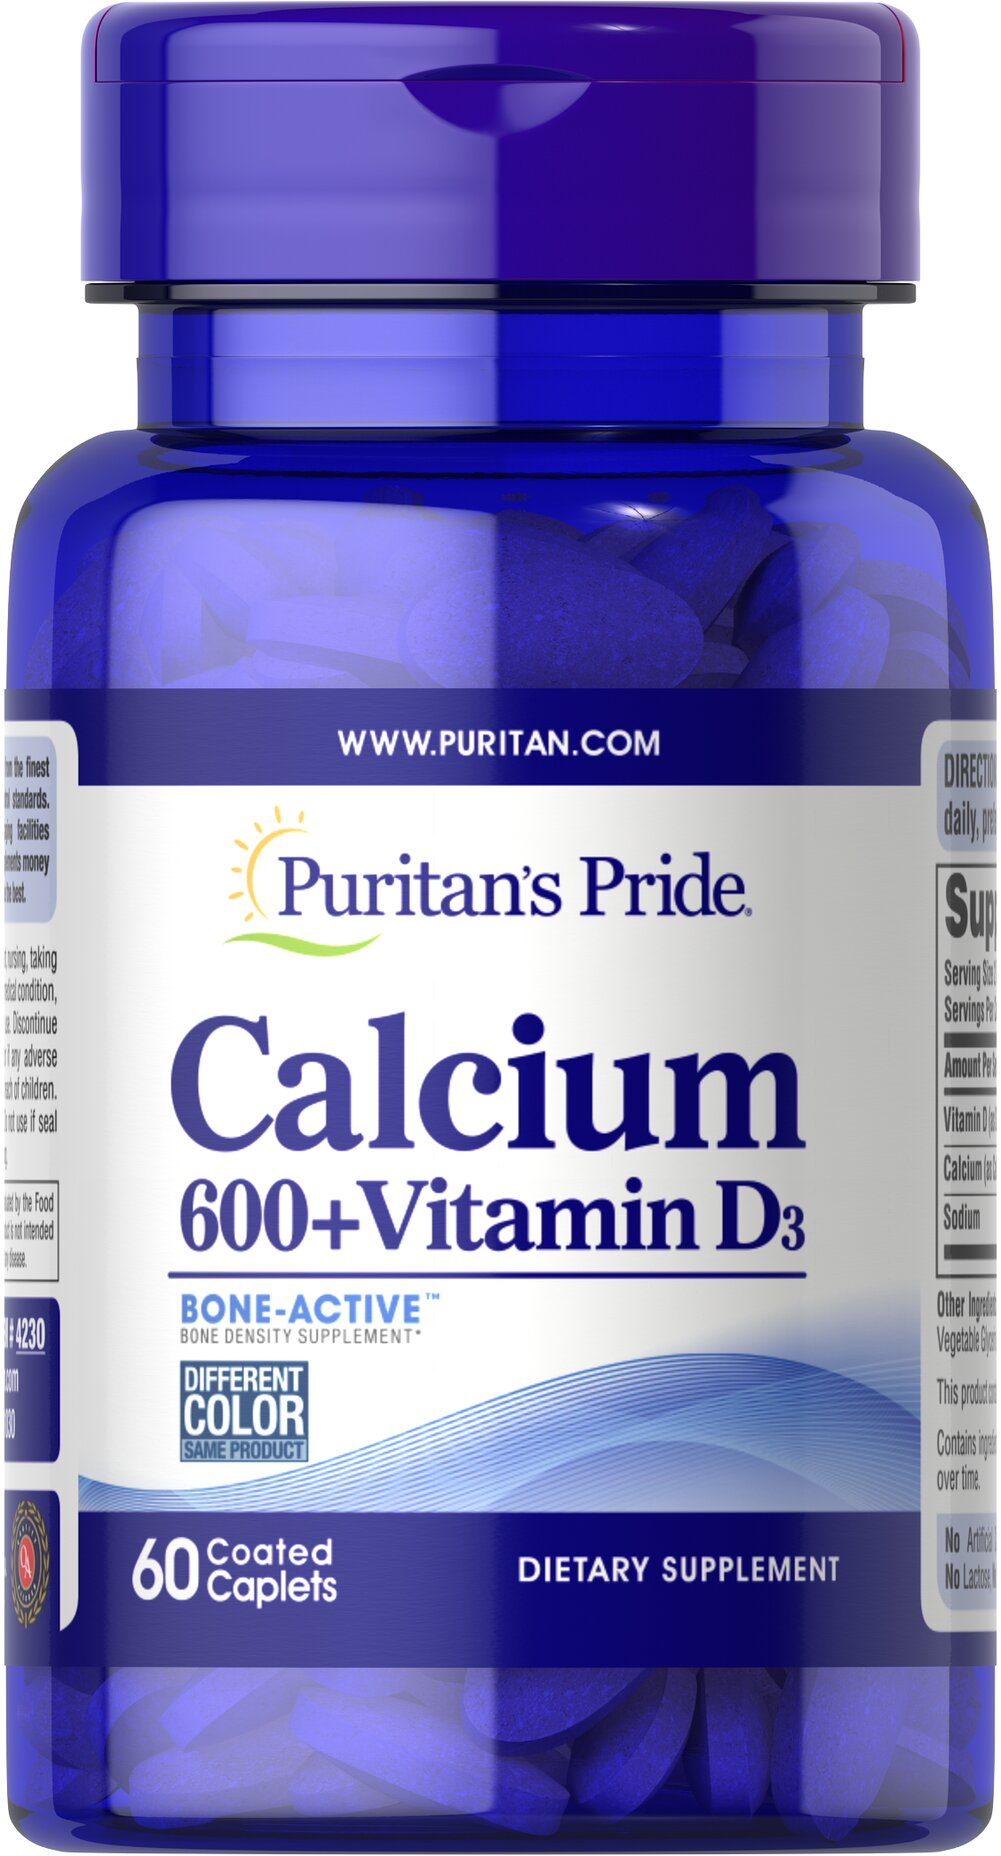 Calcium Carbonate 600 mg + Vitamin D 250 IU <p>Calcium is the primary mineral responsible for strong bones.** The body also uses Calcium for proper muscle contraction and nerve function.**  Just two tablets of our High Potency Calcium 600 + Vitamin D give you the protection of 120% of the Daily Value for Calcium. Each tablet contains 600 mg Calcium and 125 I.U. Vitamin D. Adults can take one or two tablets daily.</p> 60 Caplets 600 mg $6.99